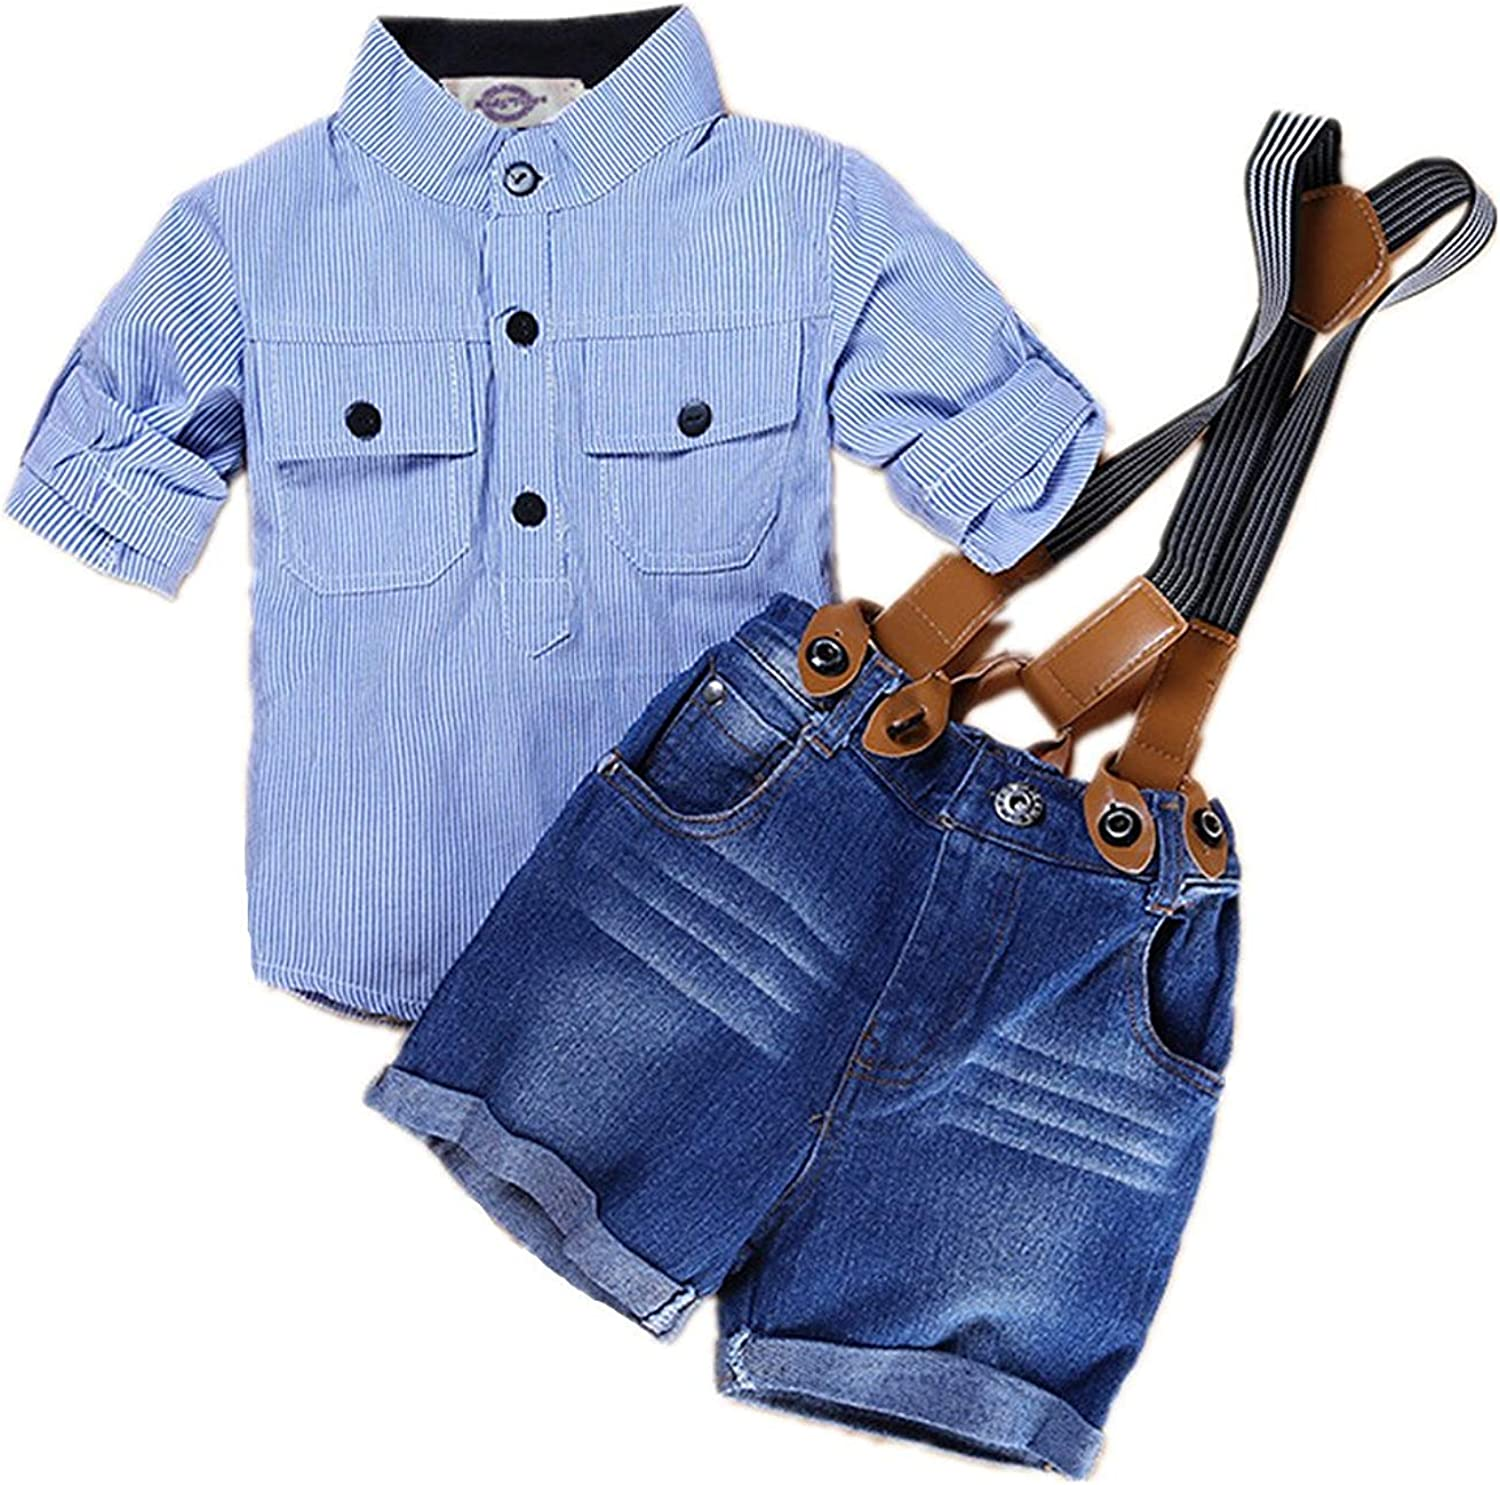 Gubabycci Baby Boys Overalls Outfit Suspender Shorts Long Sleeve Shirt Set Denim Cotton Blue Stripe Two-Piece Suits